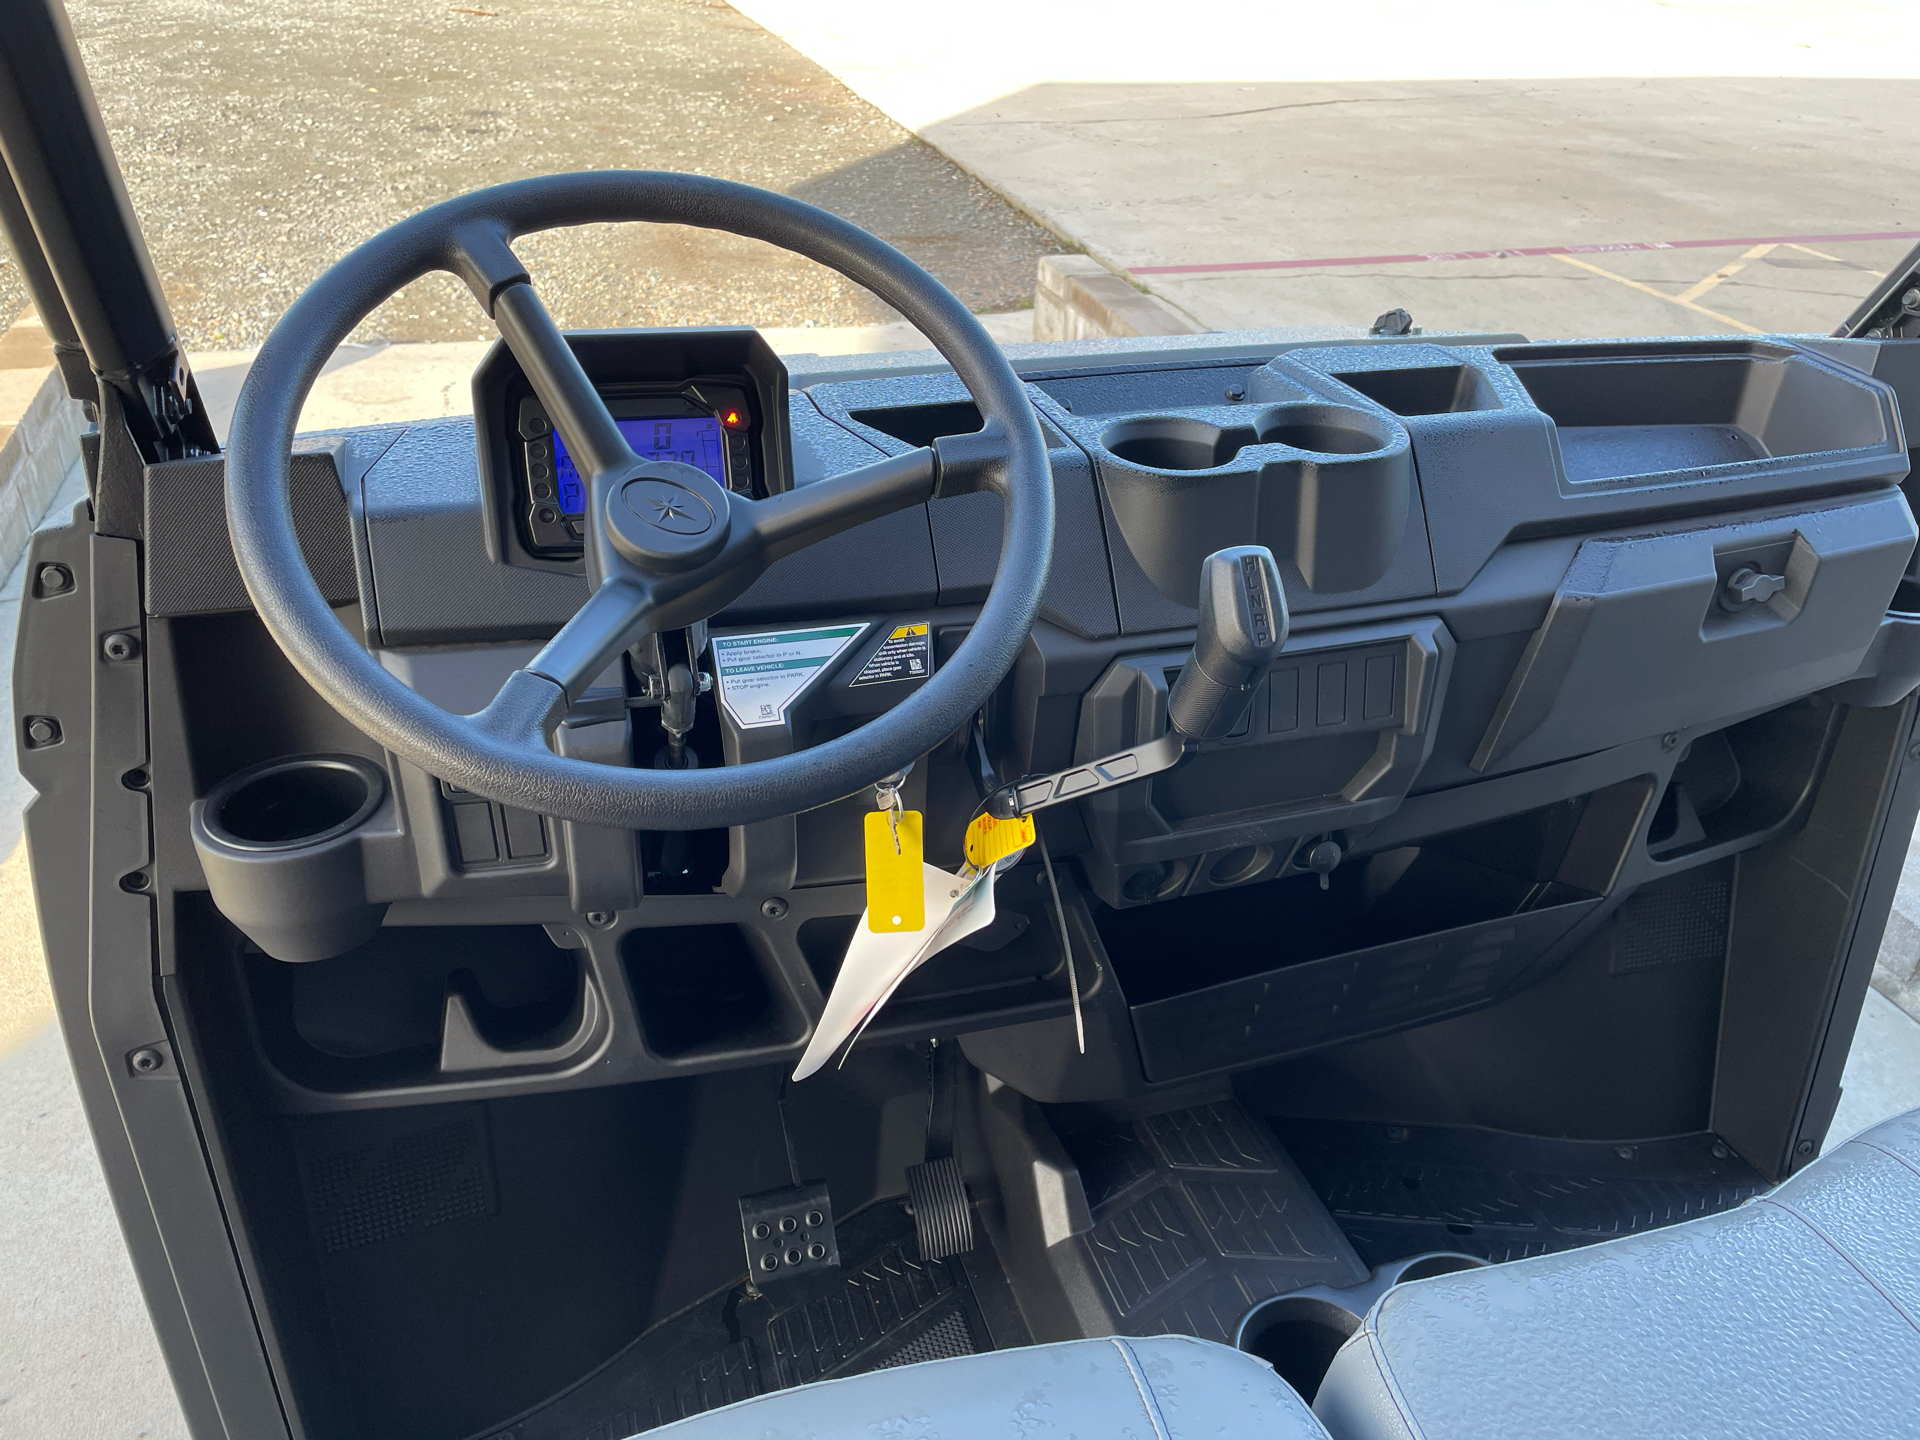 2020 Polaris PRO XD 4000G AWD in Marshall, Texas - Photo 4